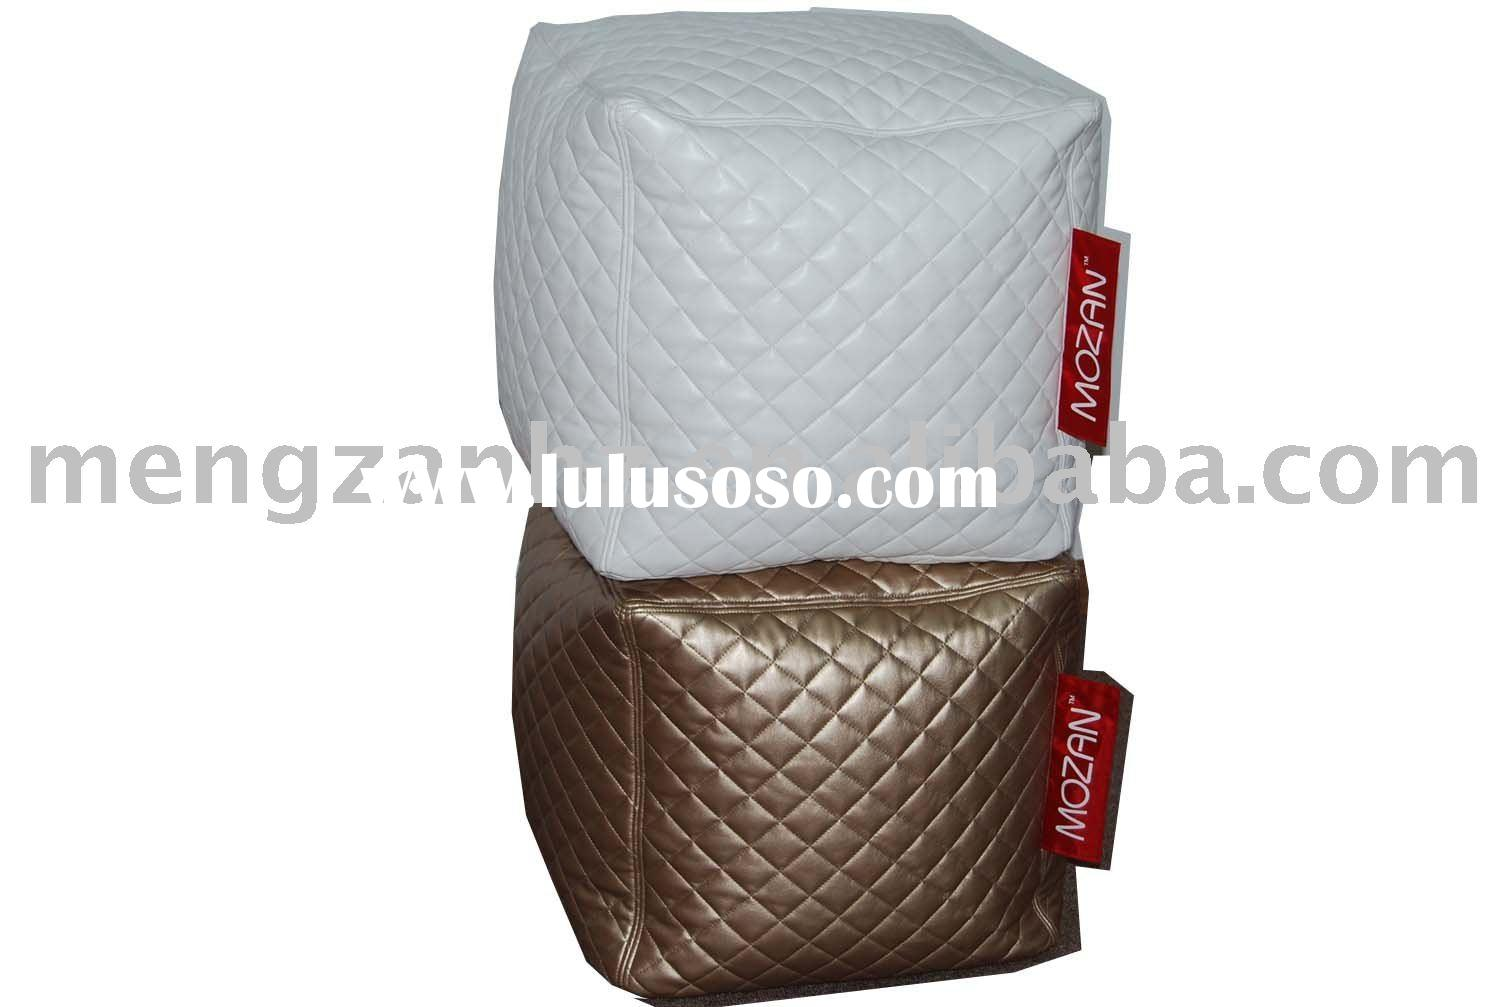 bean bag pouf in white color, PU leather